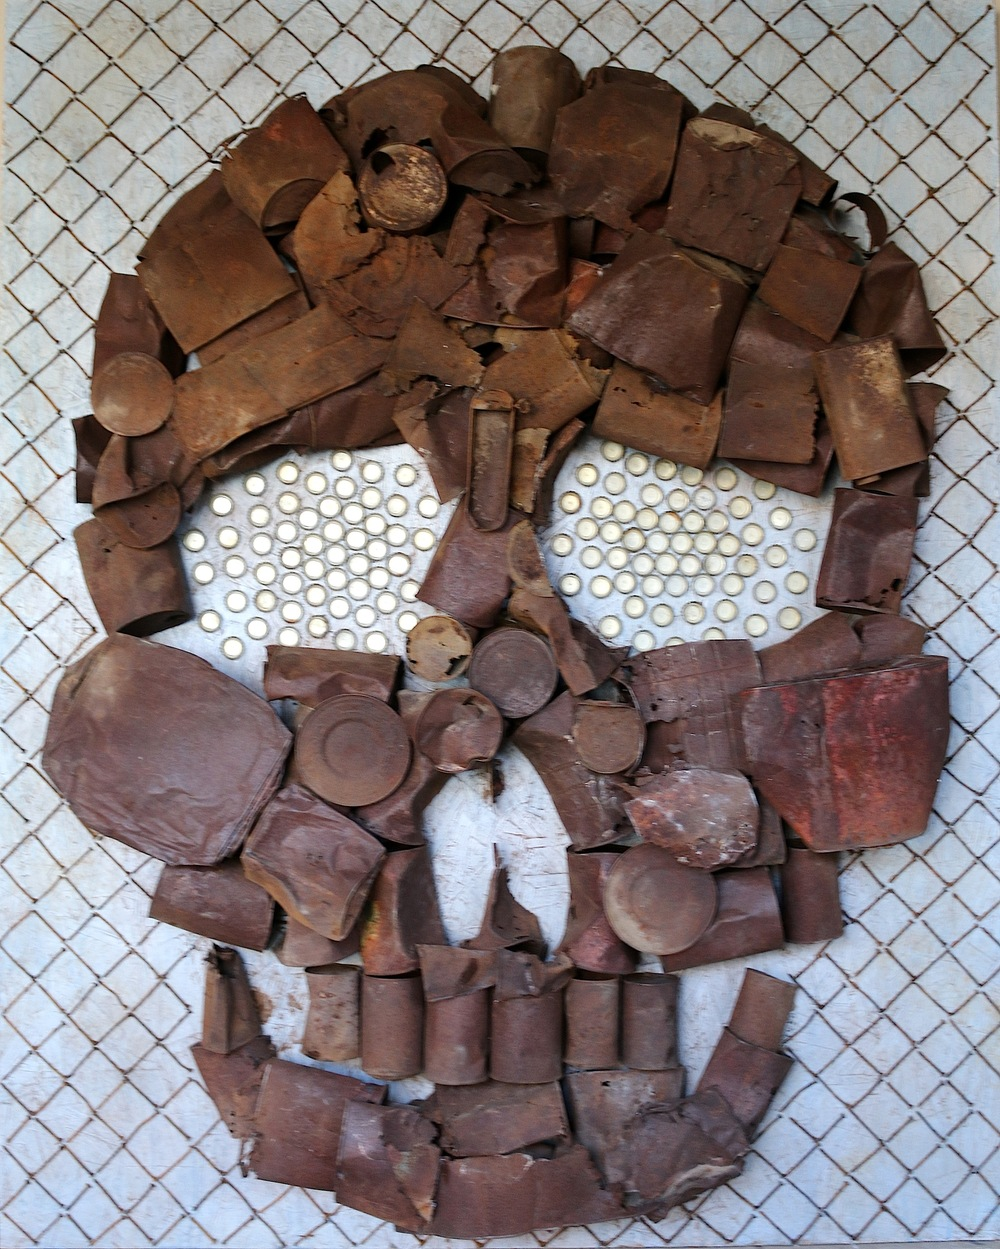 "Rabbit Hole , rusted cans, nails, bottle caps, paint, wood, 48x60"", 2015, Price: $2900"